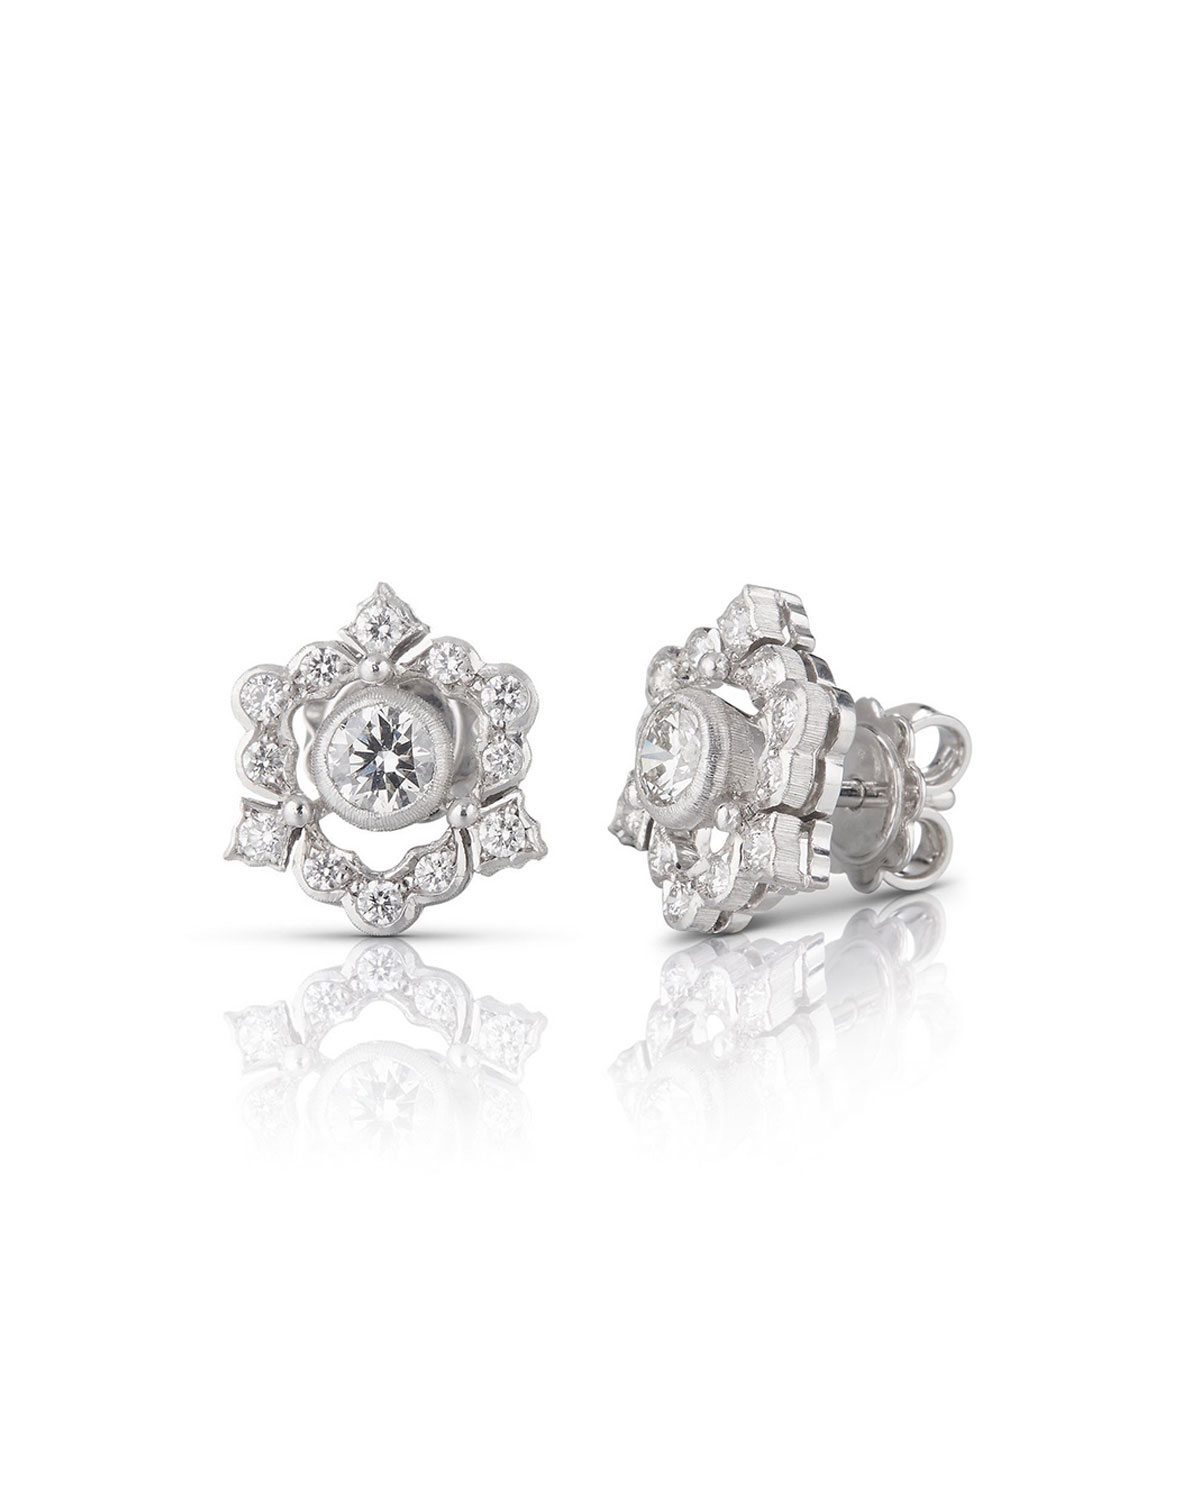 Buccellati 18k White Gold Mini Ghirlanda Button Earrings w/ Diamonds